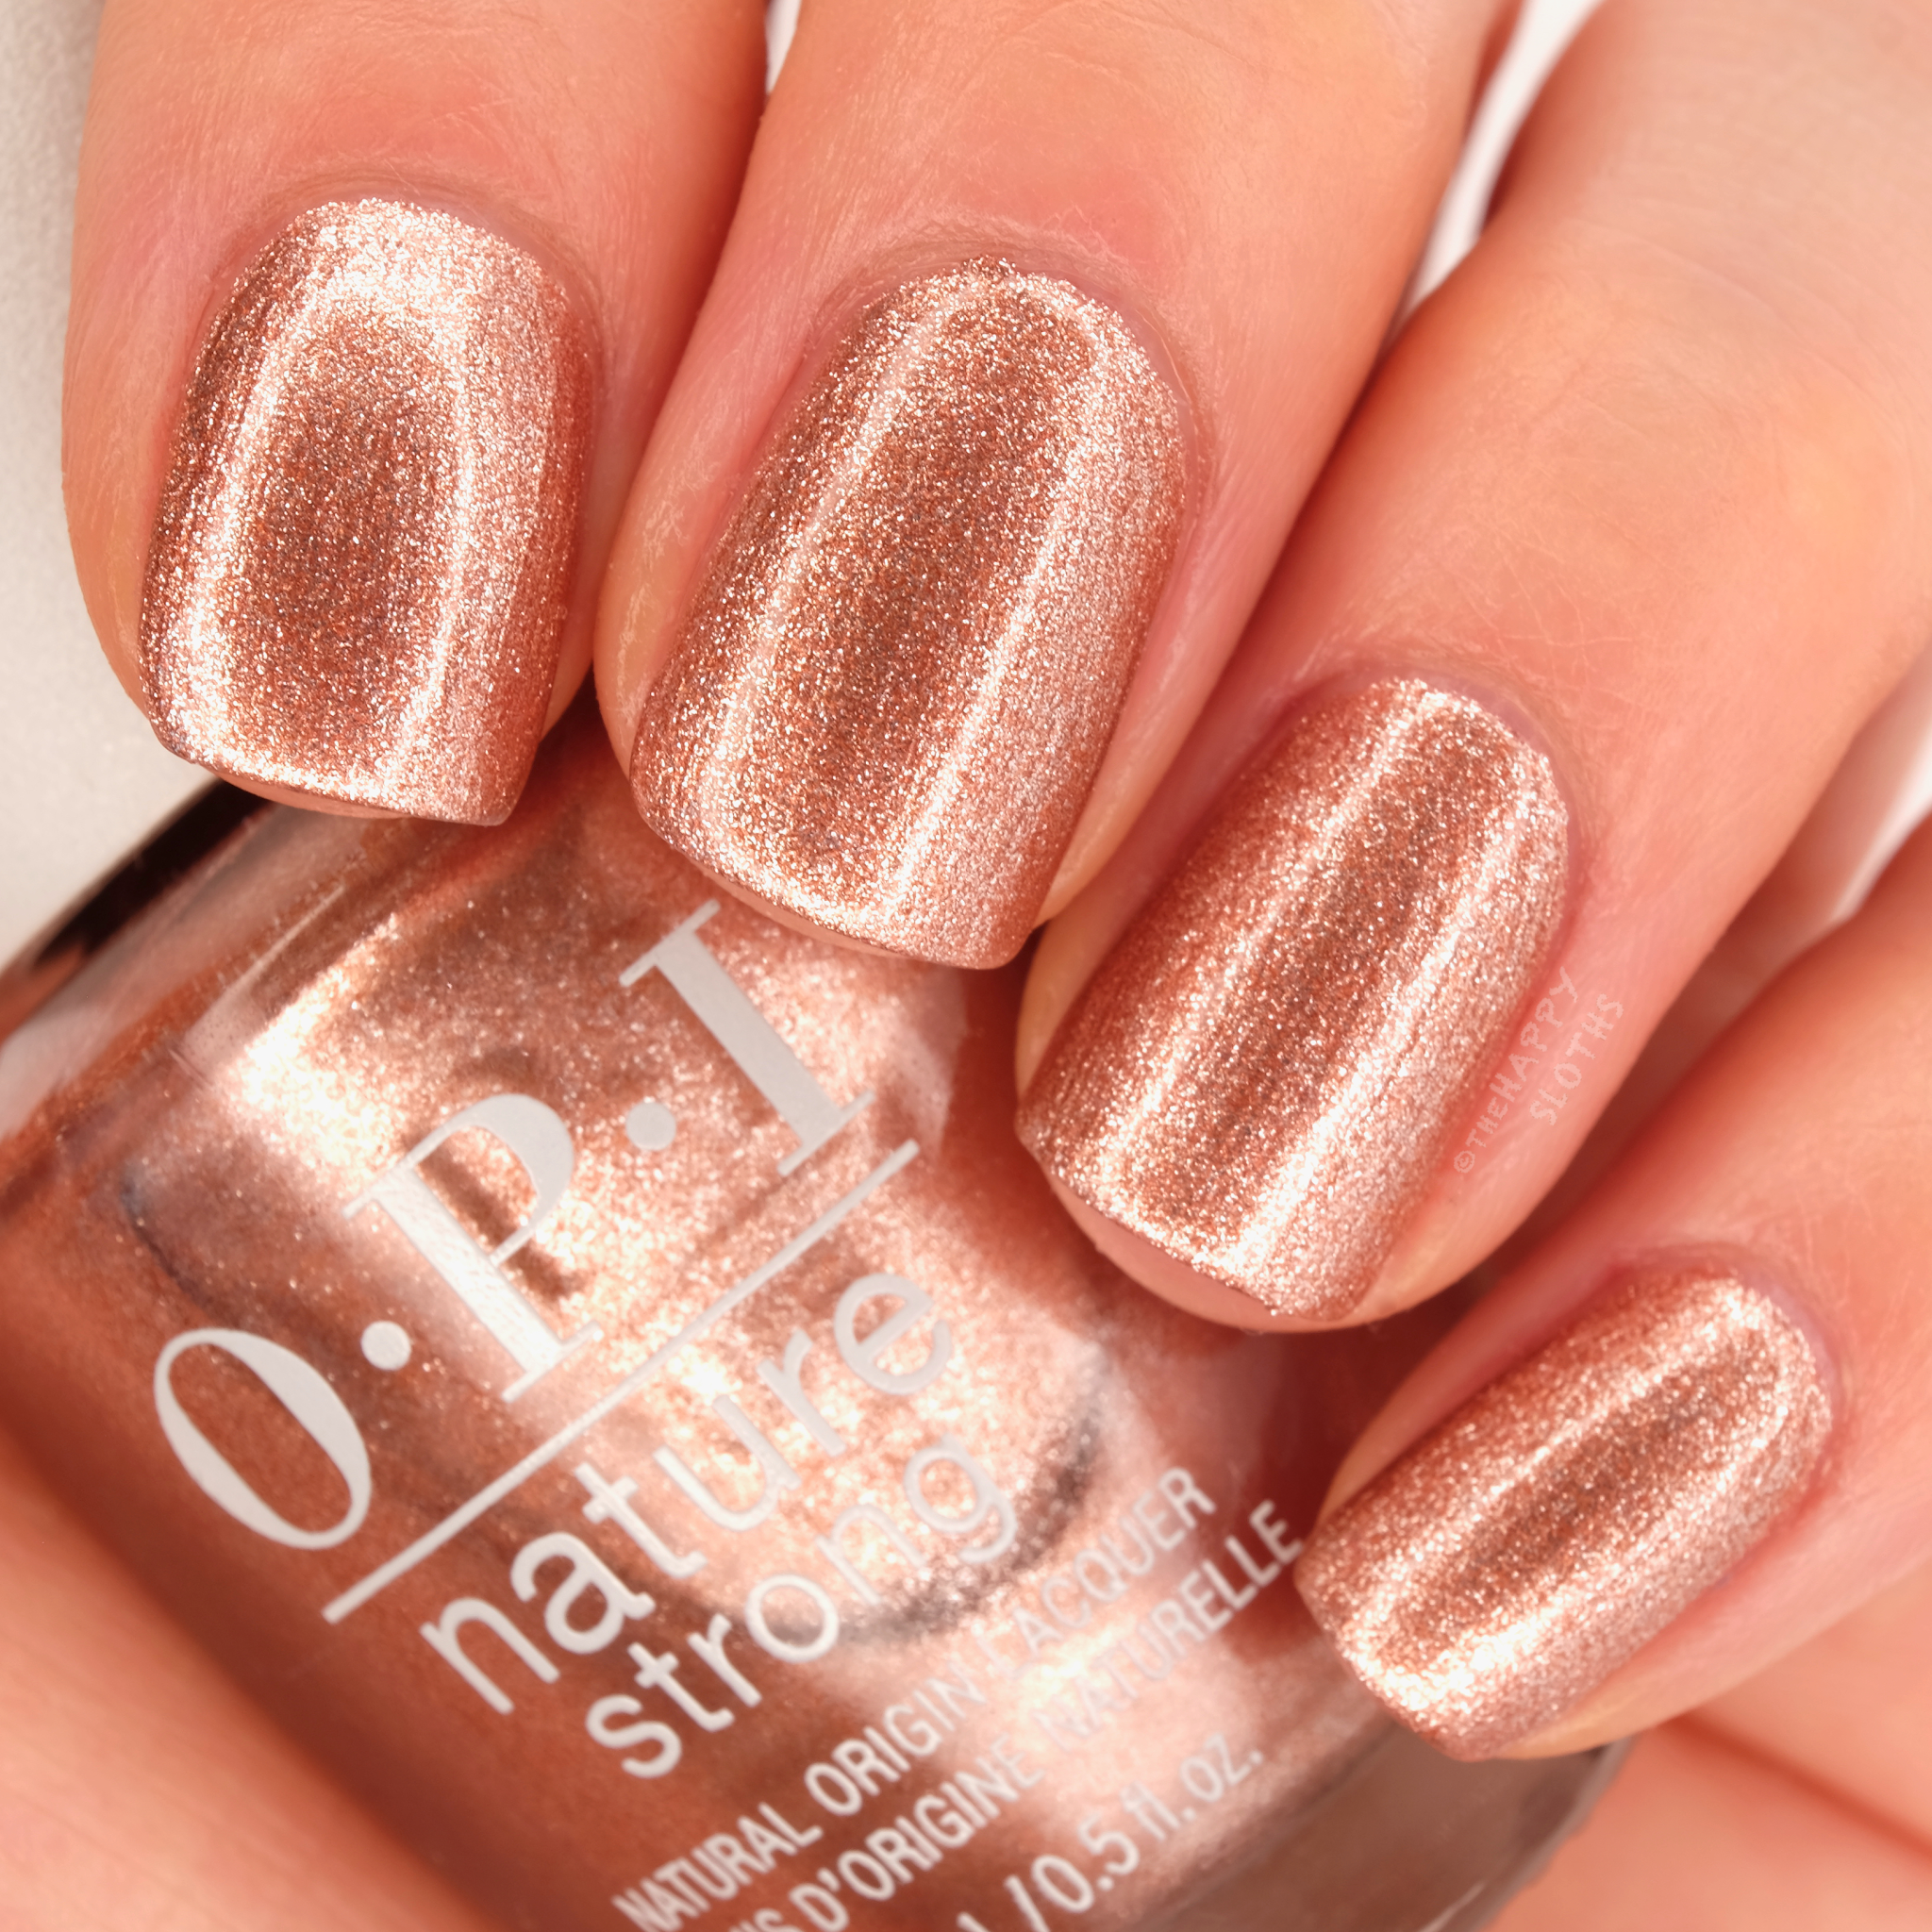 OPI Nature Strong   Intentions are Rose Gold: Review and Swatches